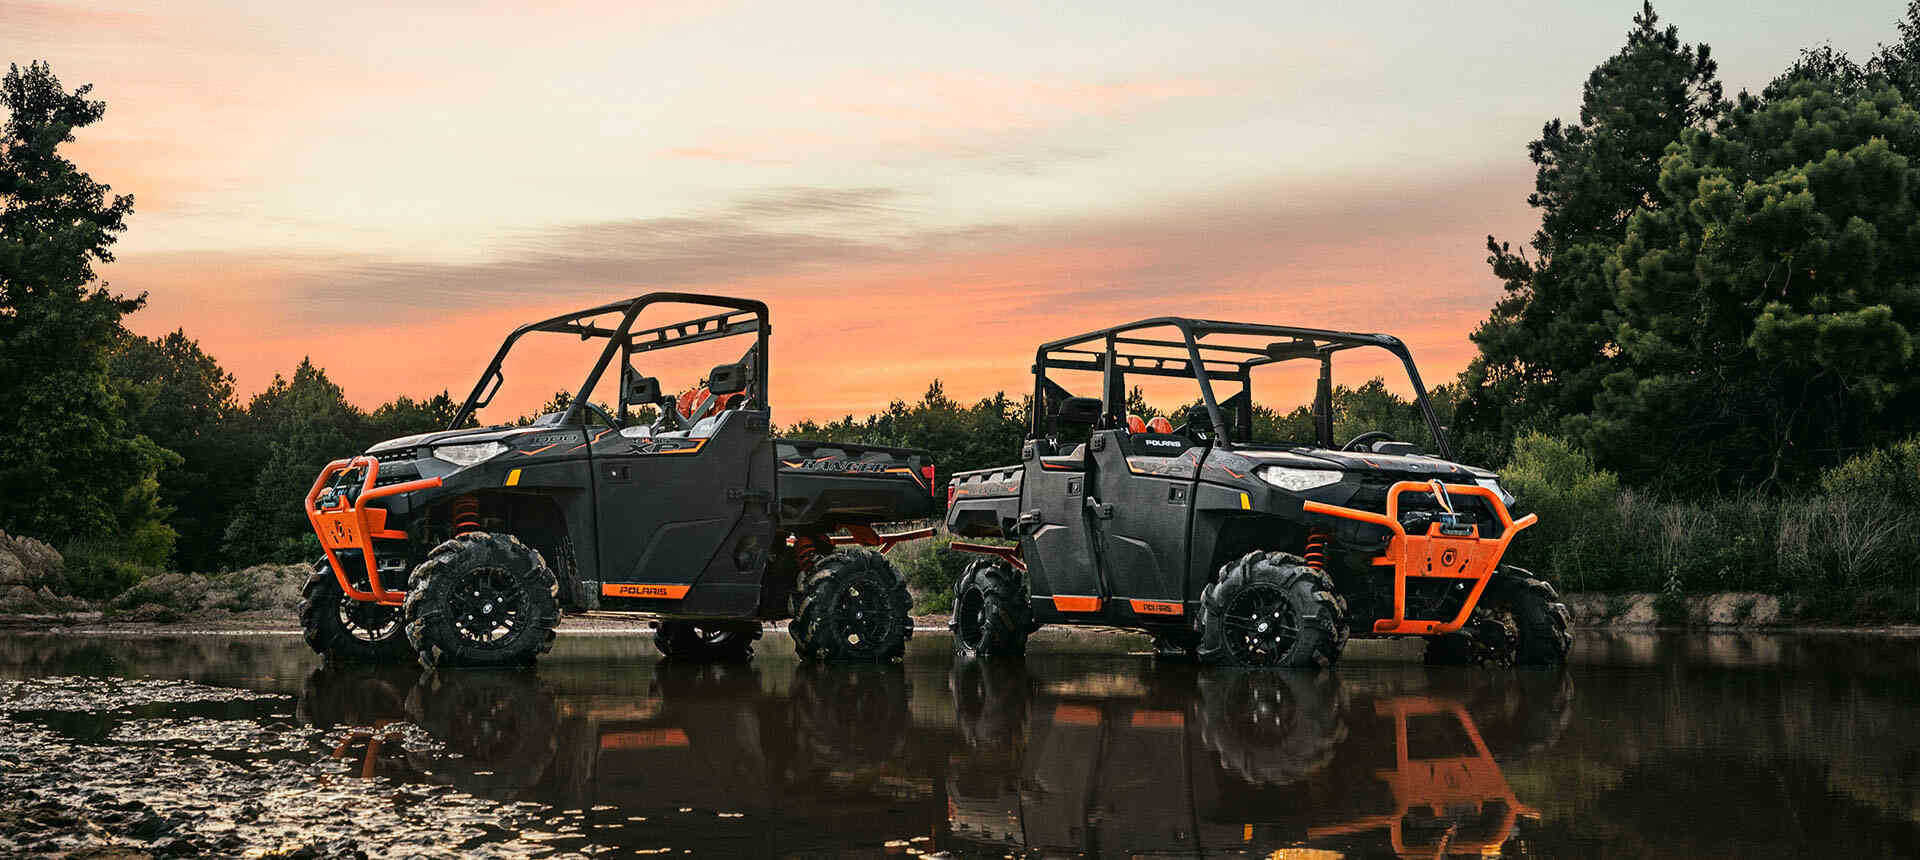 Wild West Motorsports Polaris Ranger Offers